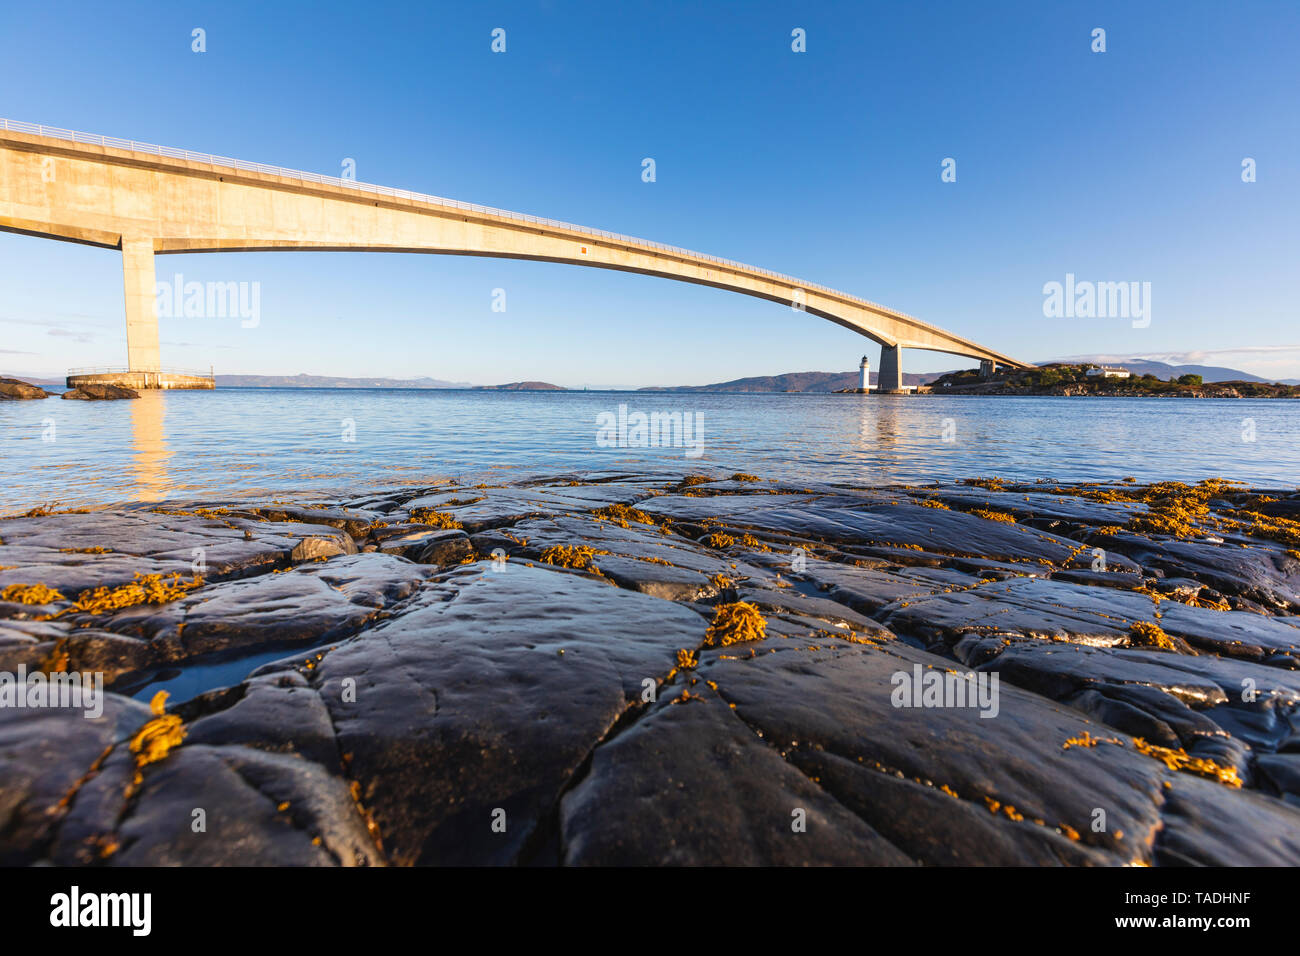 United Kingdom, Scotland, Skye Bridge view in the early morning Stock Photo